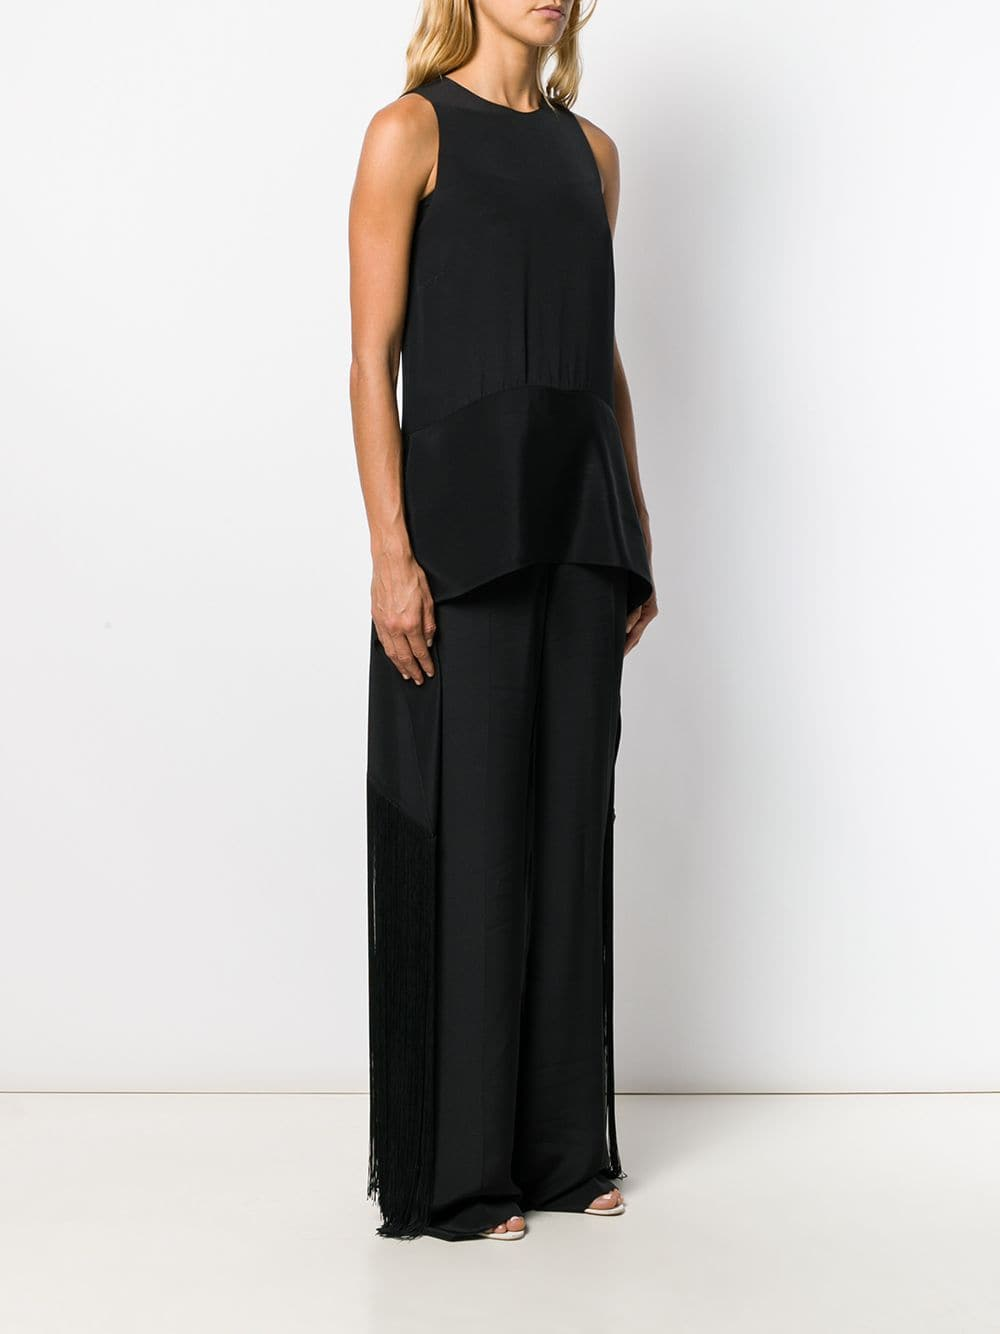 black sleveless silk jumpsuit with side fringed detail STELLA MC CARTNEY |  | 579217-SLA031000